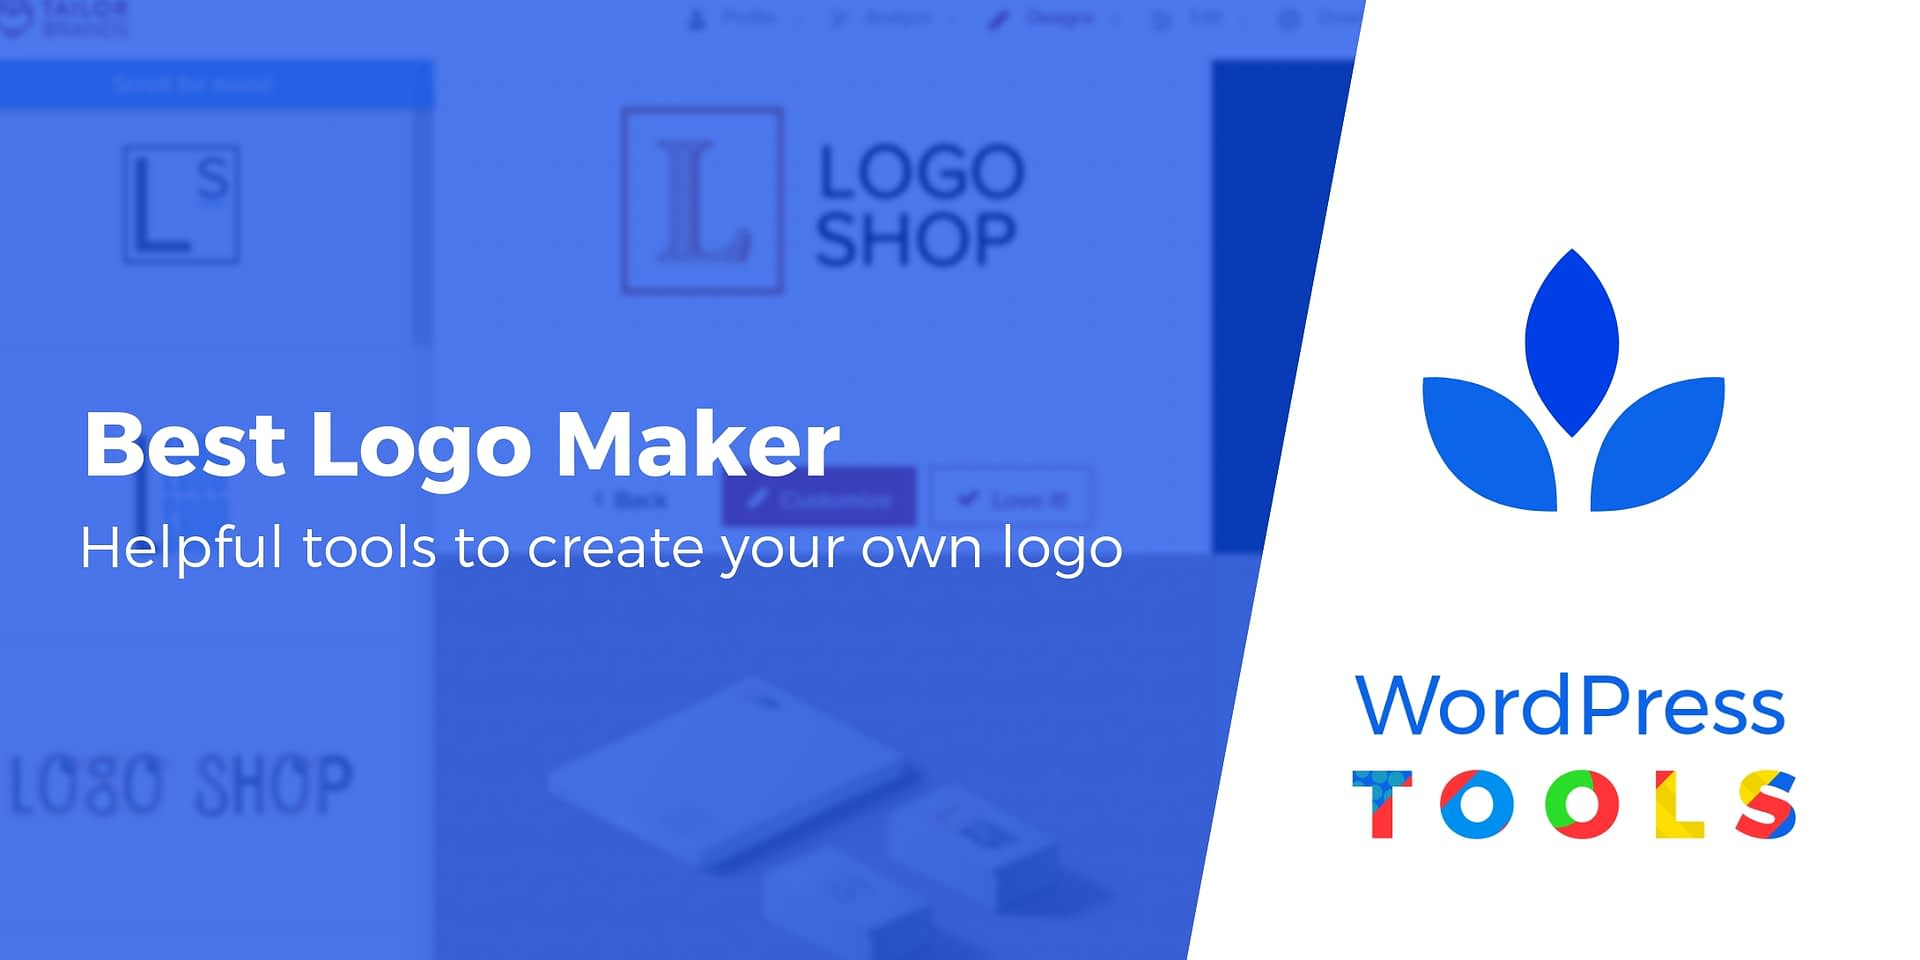 Best Logo Maker: 10 Great Tools Compared for 2019